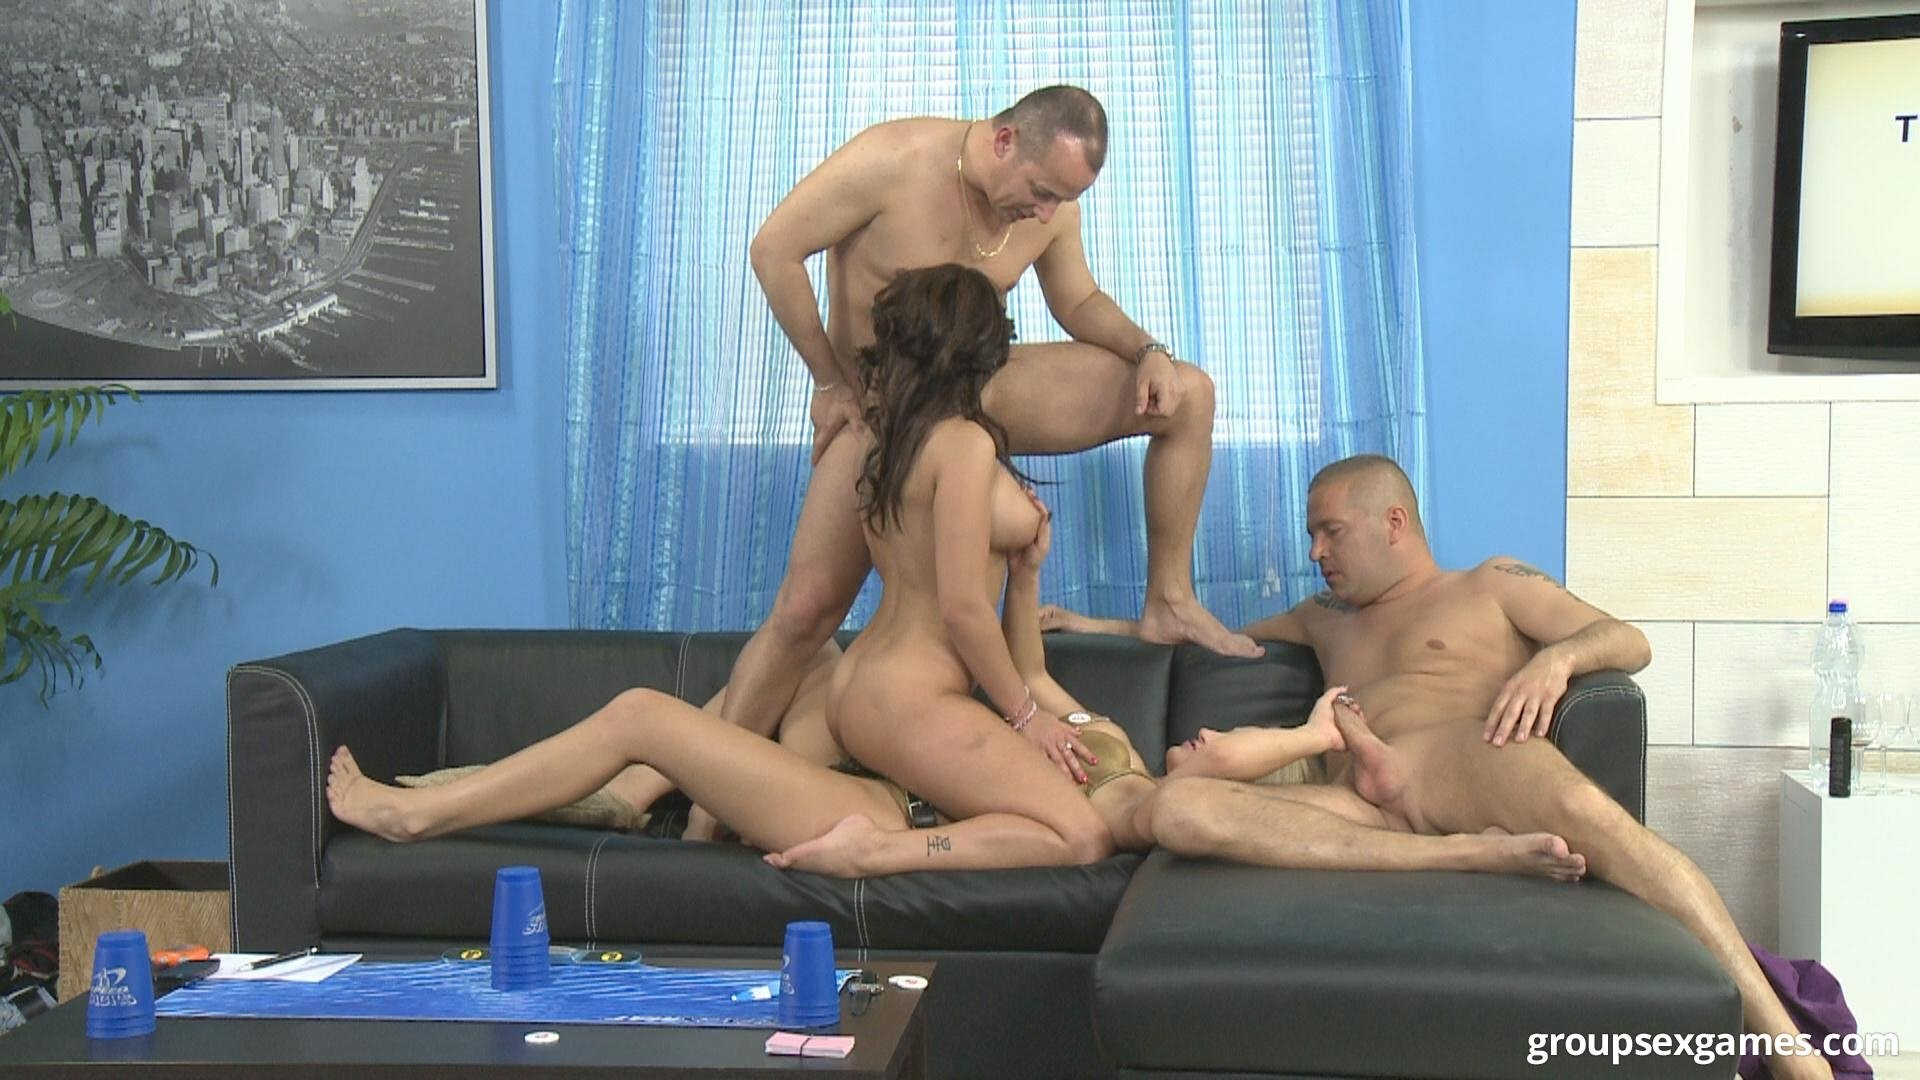 Indean girl sexy video Bangers housewife porn